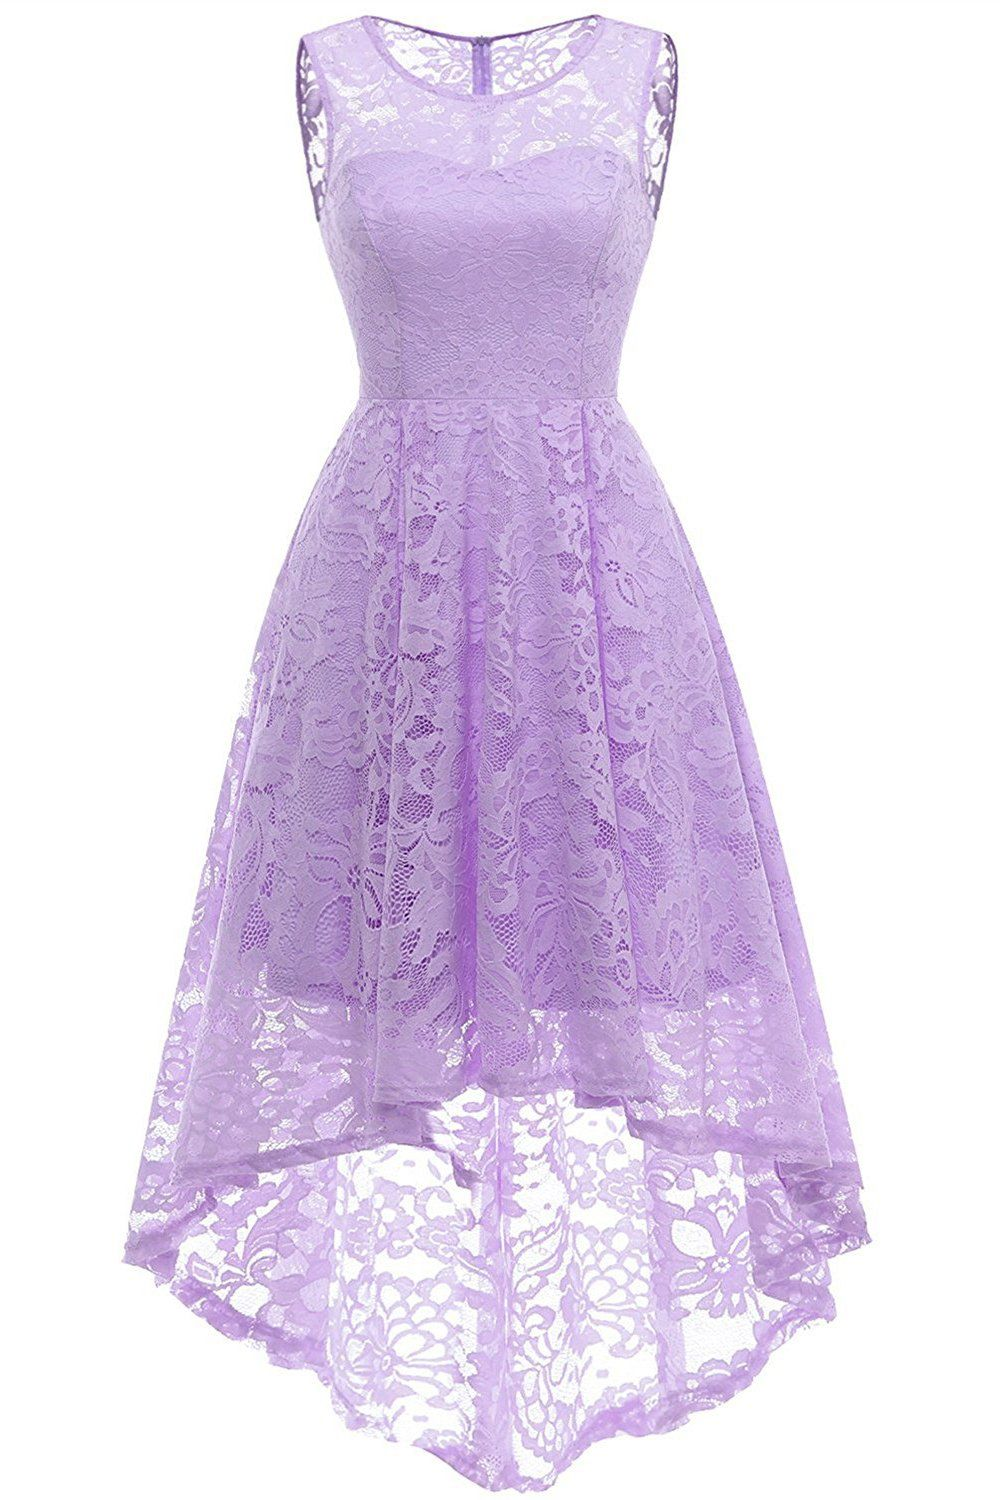 UK Stock New Arrival Mini Bead Purple Prom Party Cocktail Gown Bridesmaid Dress